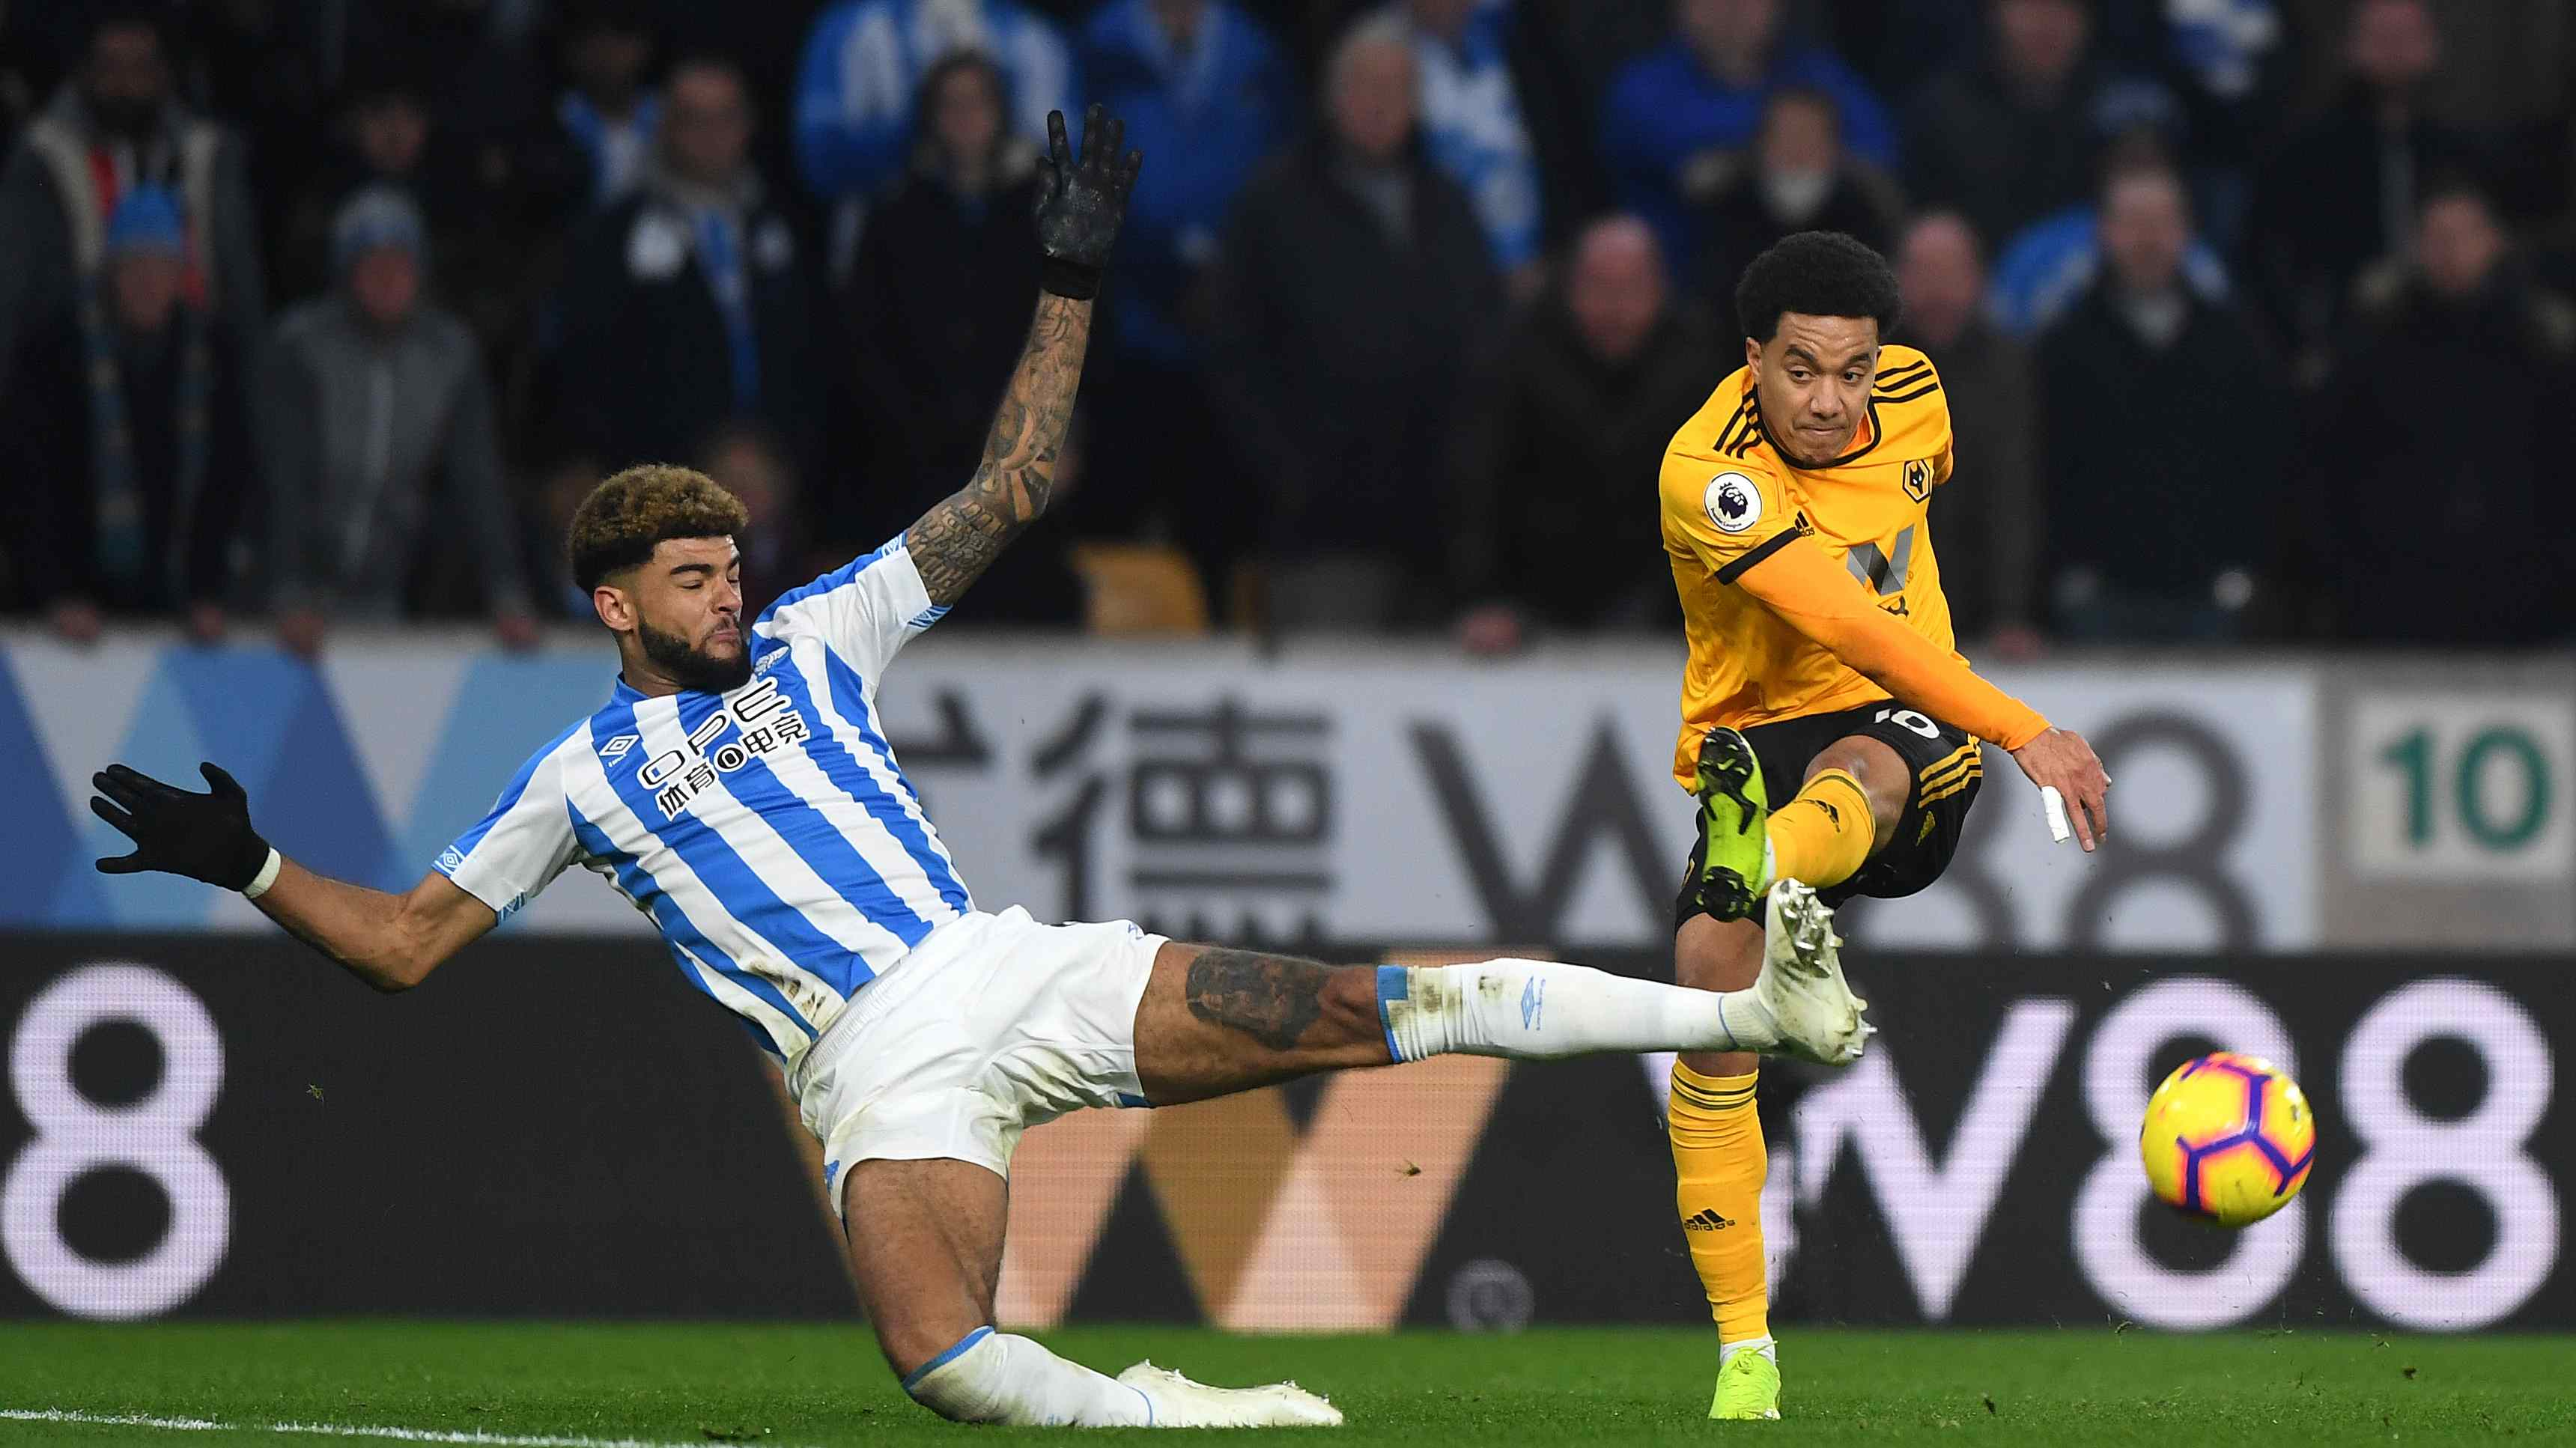 Huddersfield Town - Wolves